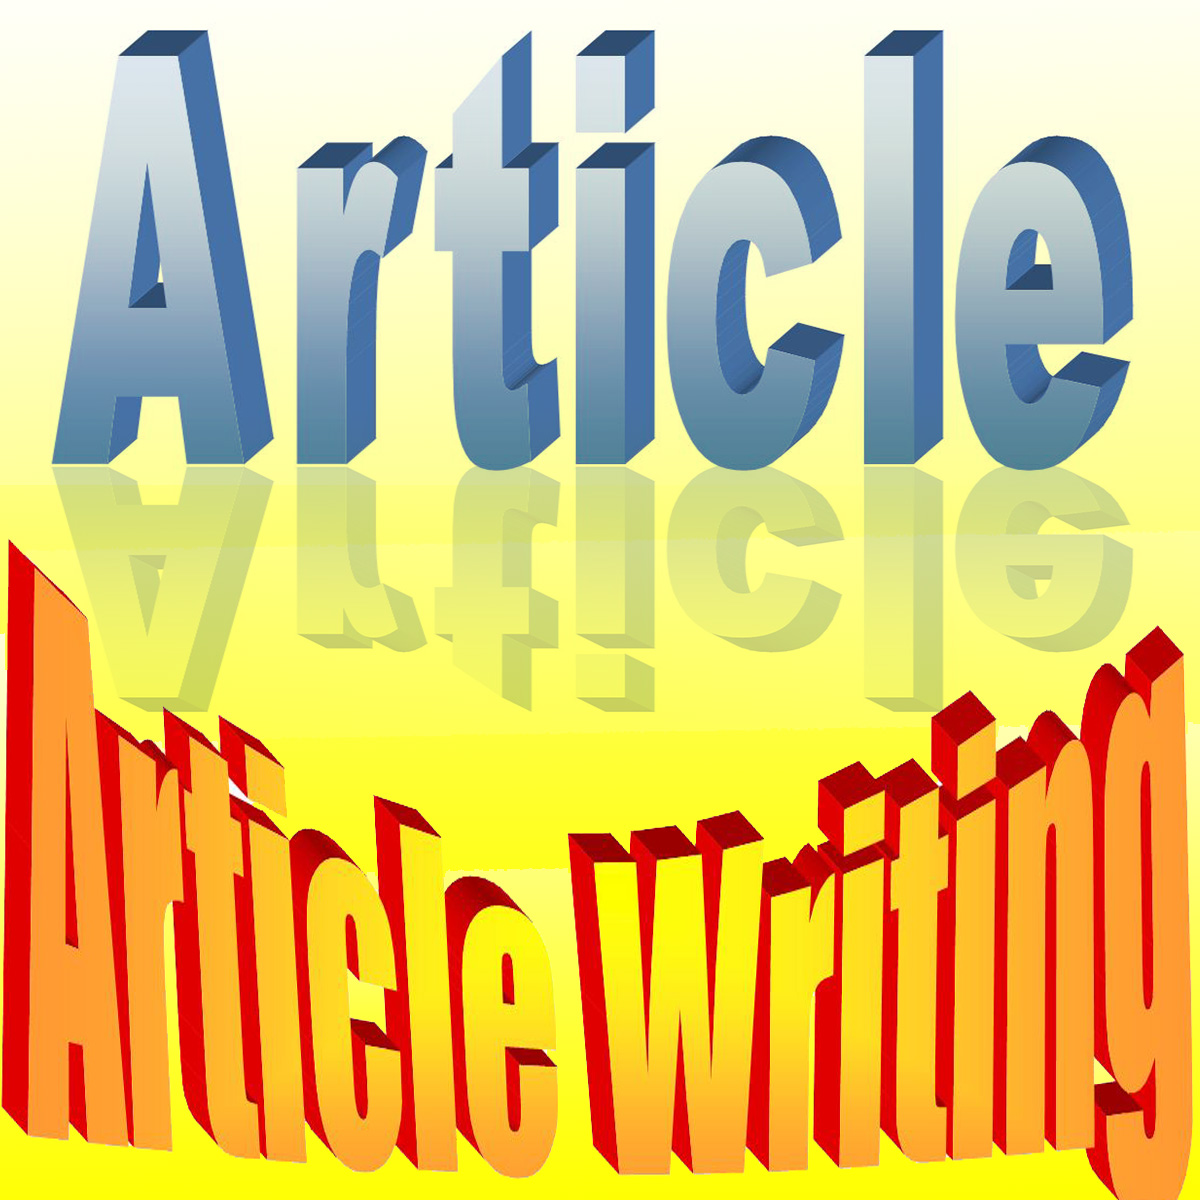 700 words Article Writing Unique, Error free and informative Guaranteed